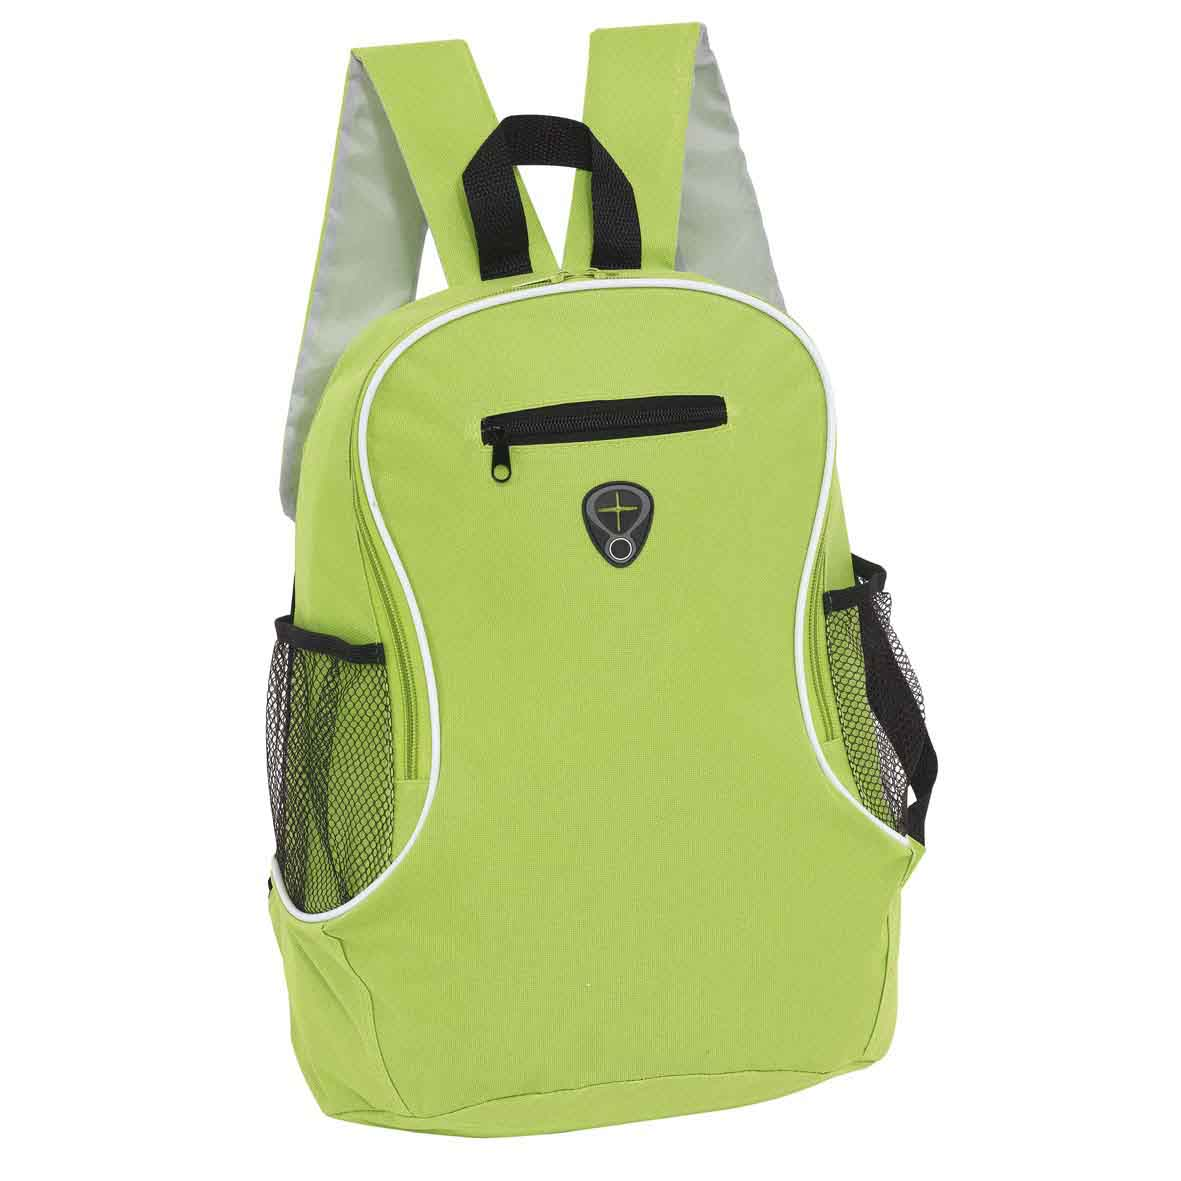 Backpack 'Tec' - Black/Light Green ins-0819578